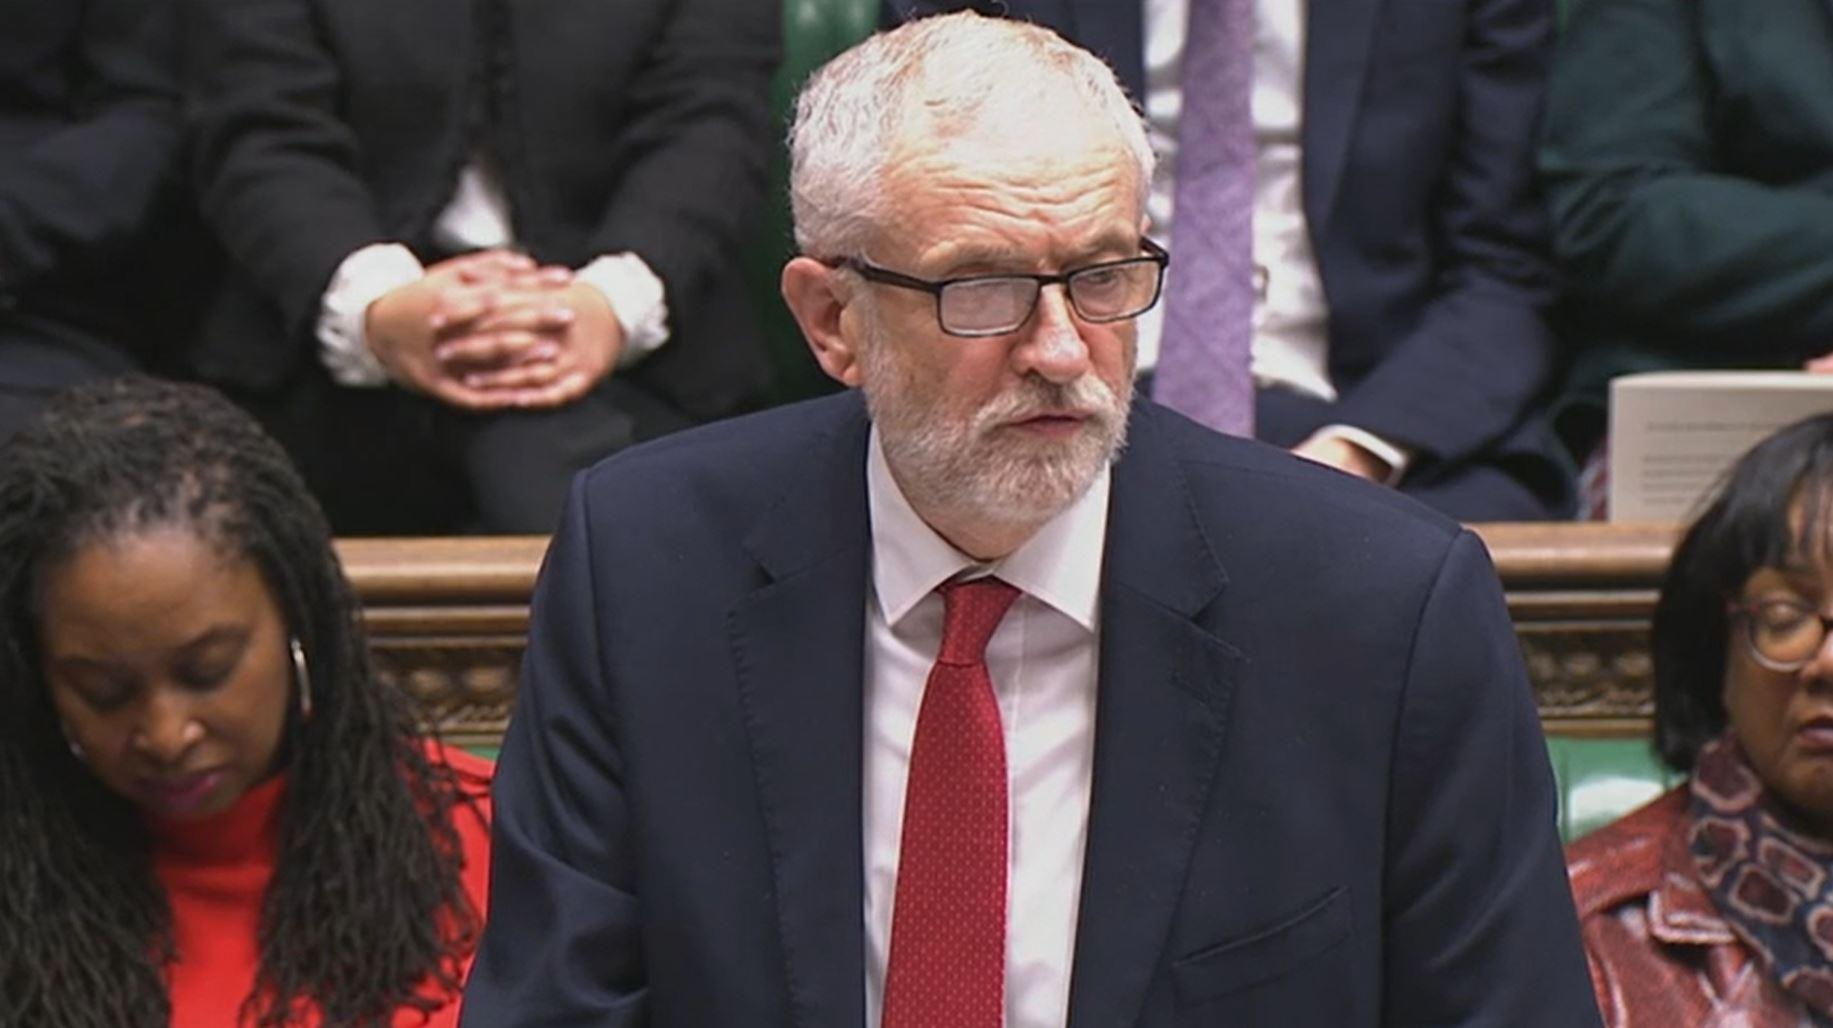 Labour leader Jeremy Corbyn during the debate on the House of Commons, London, on the Queen's Speech. (Photo by House of Commons/PA Images via Getty Images)